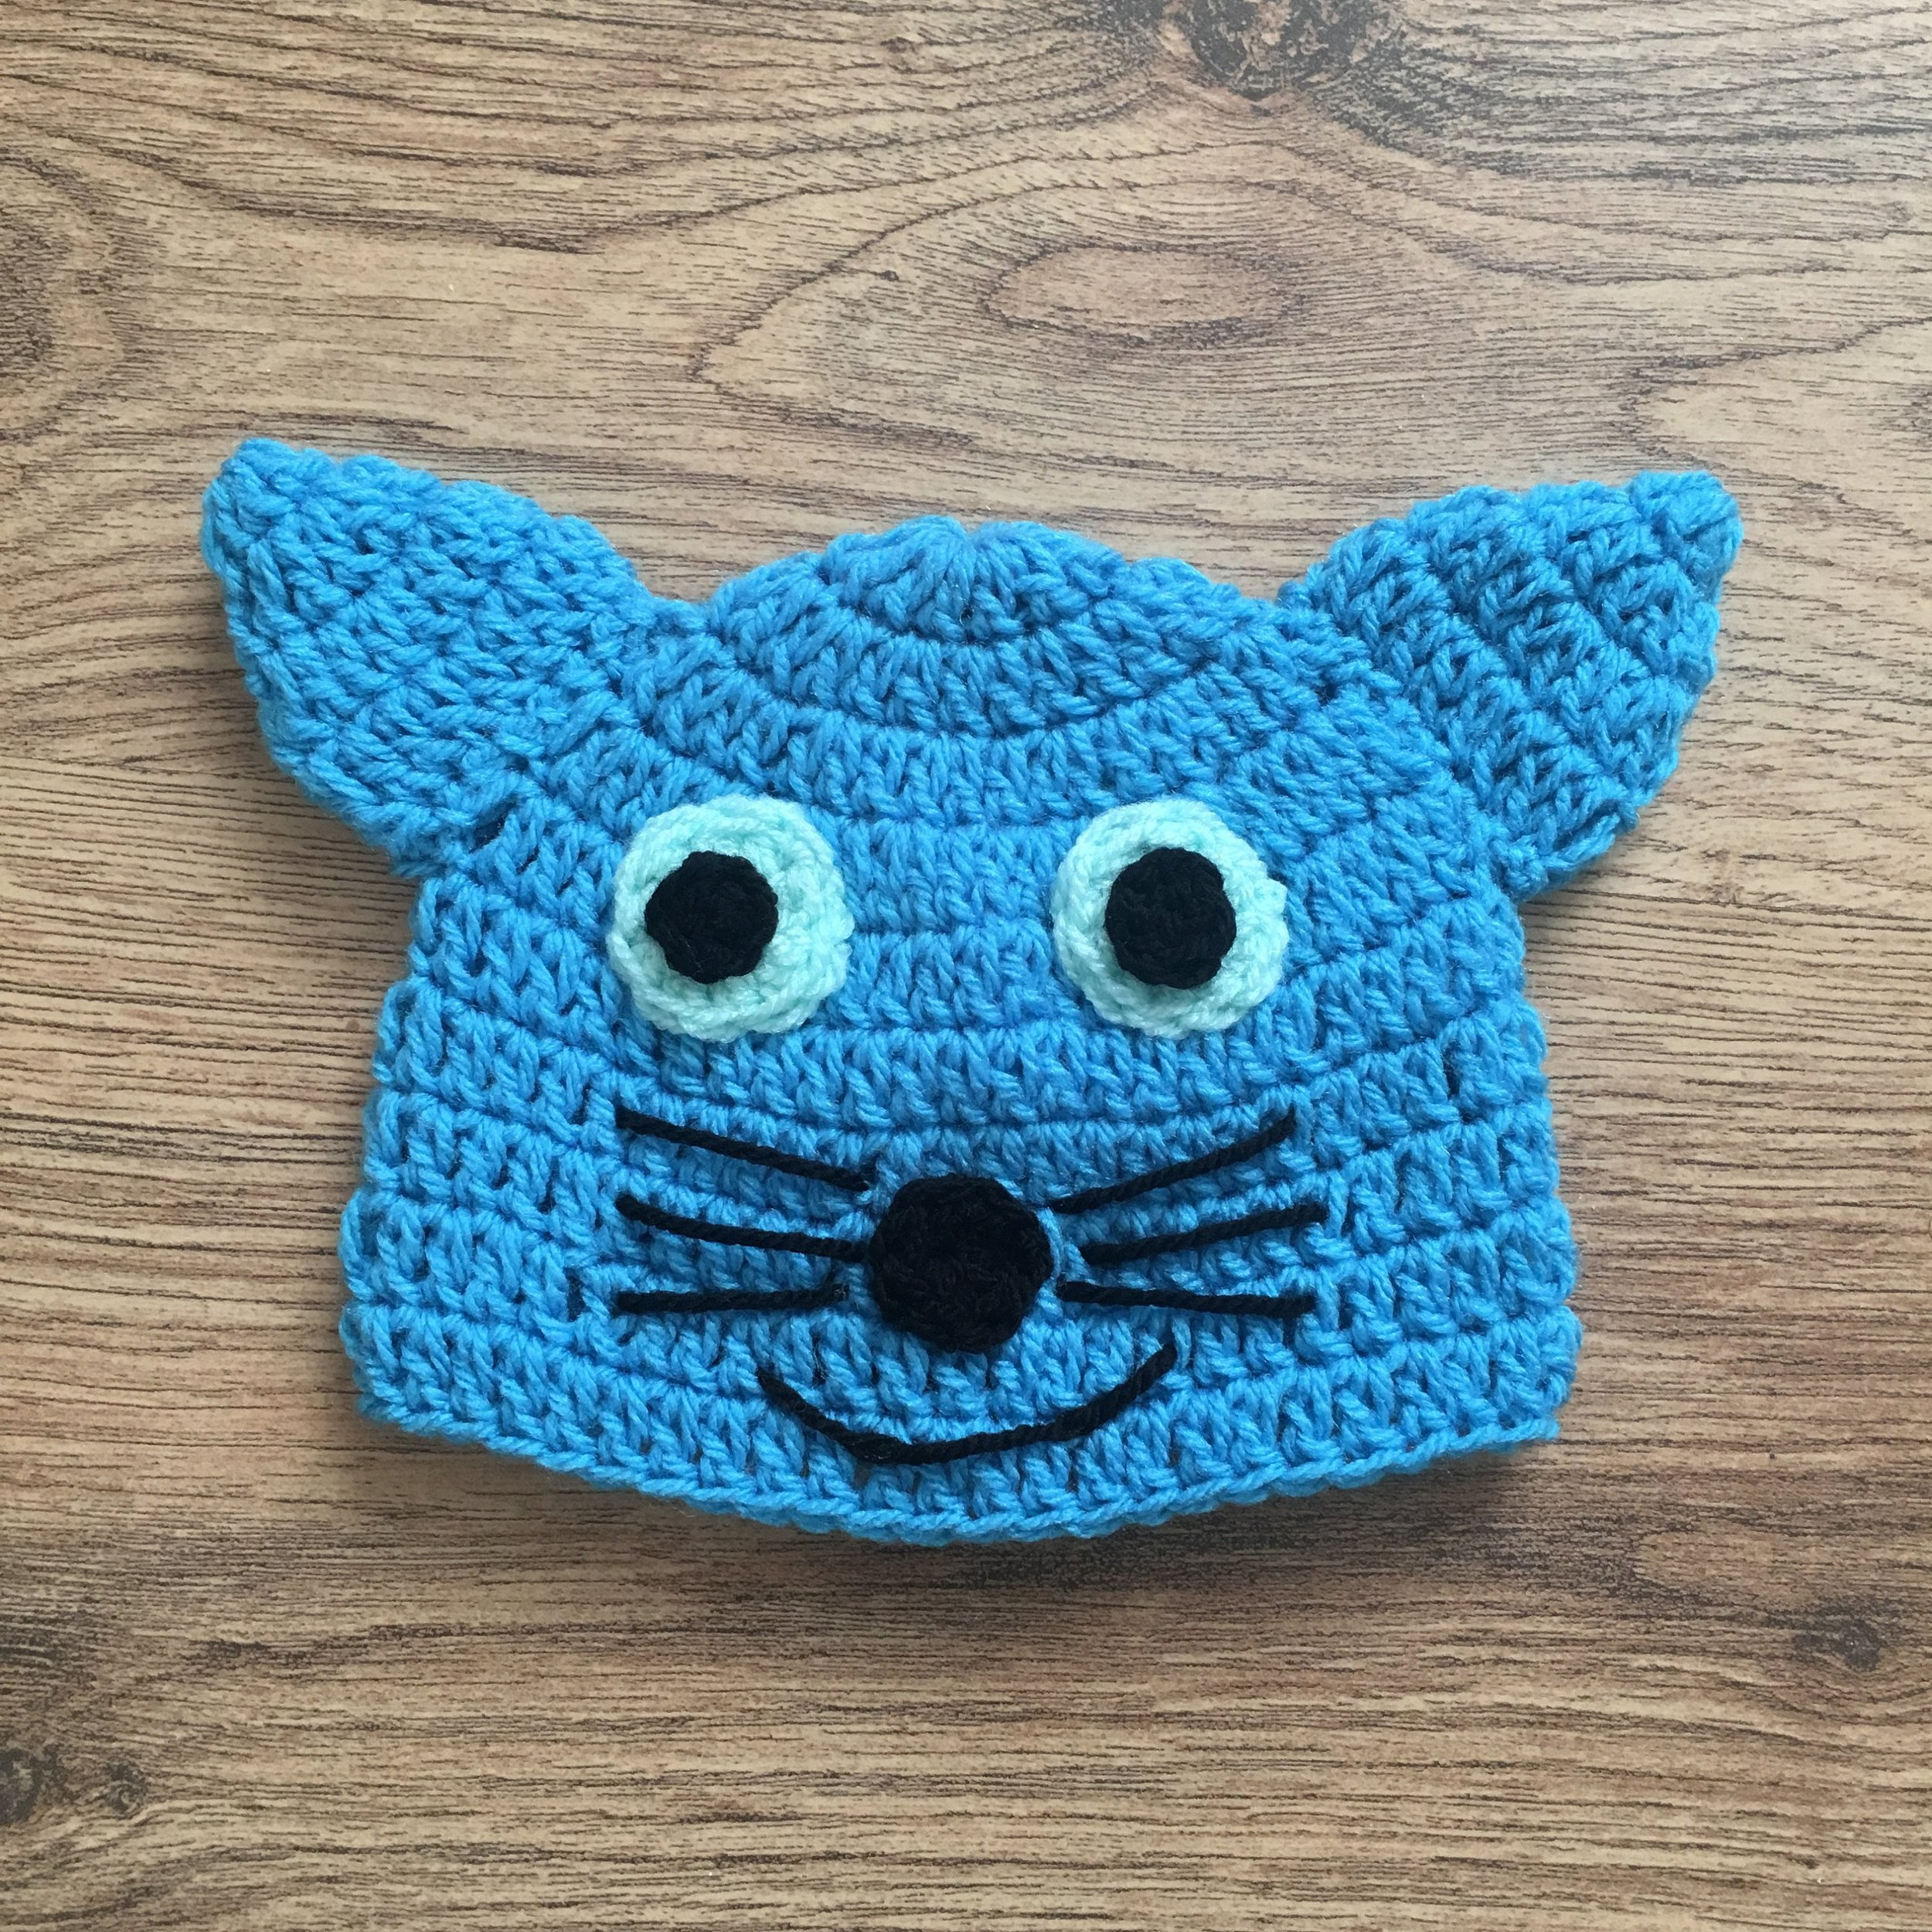 yay-for-crochet-mouse-hat